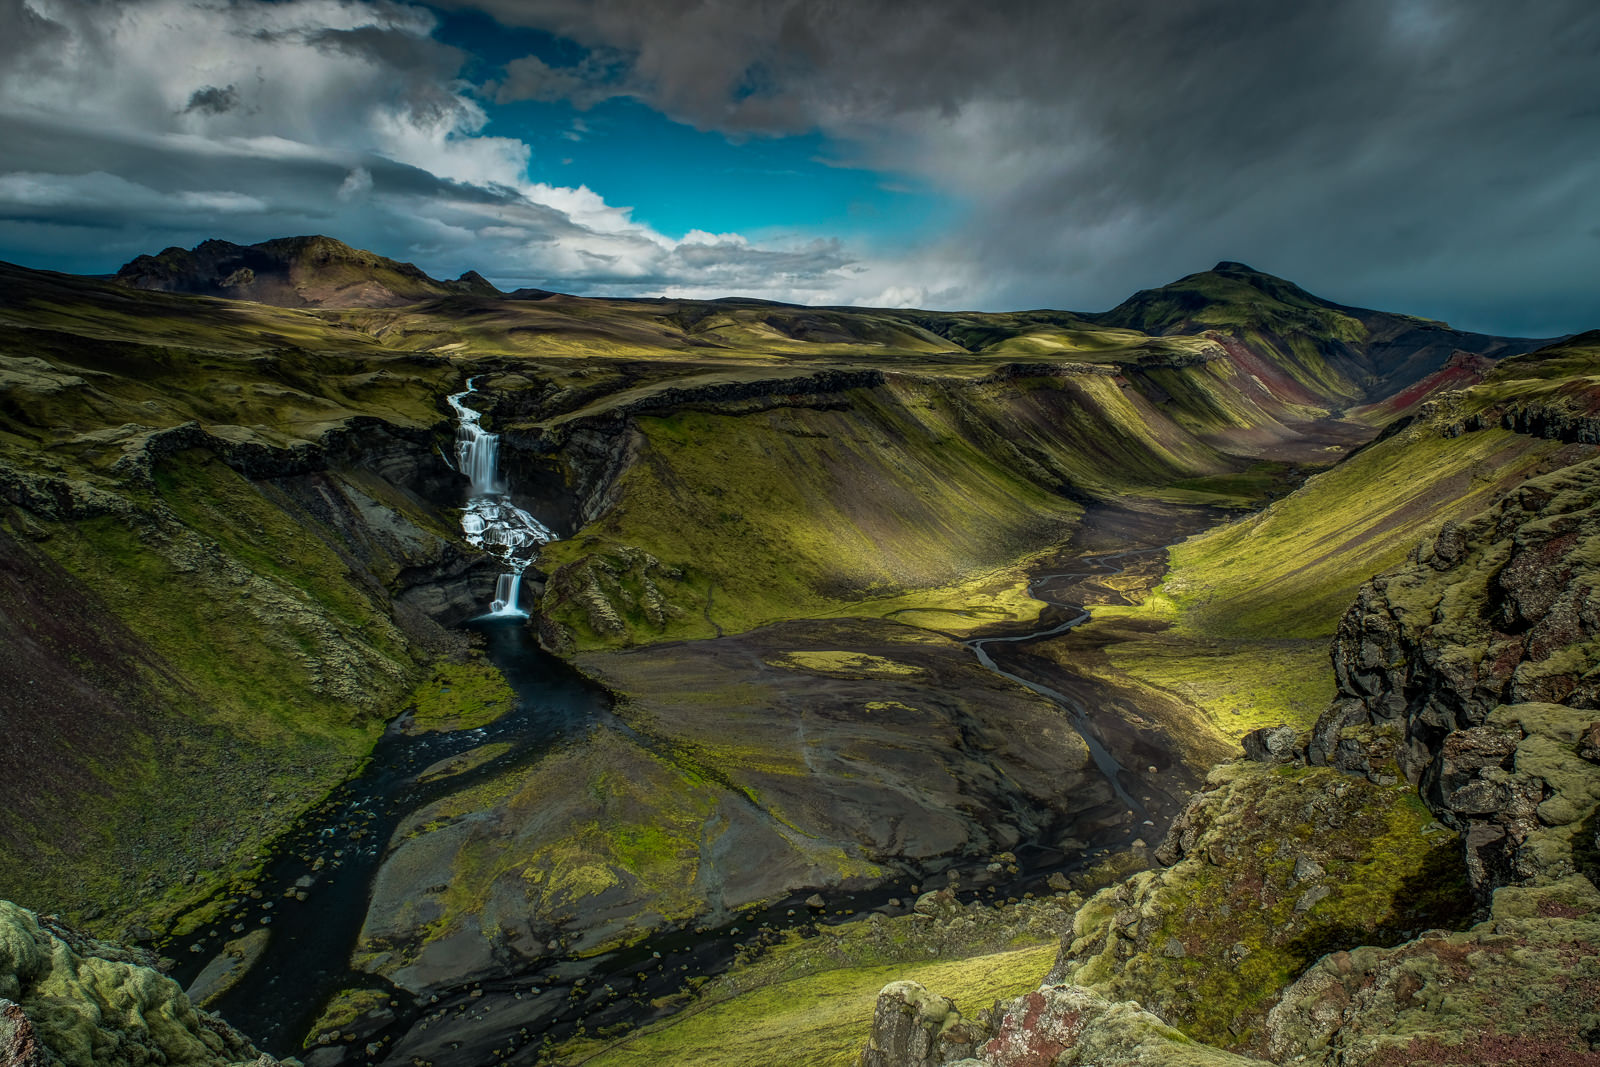 Ófærufoss waterfall at Eldgjá Fissure. Fast changing weather with showers and sun spells makes this place a brilliant scenery (XF 16-55mm f2.8 at 16mm 2.5s f11 ISO200)